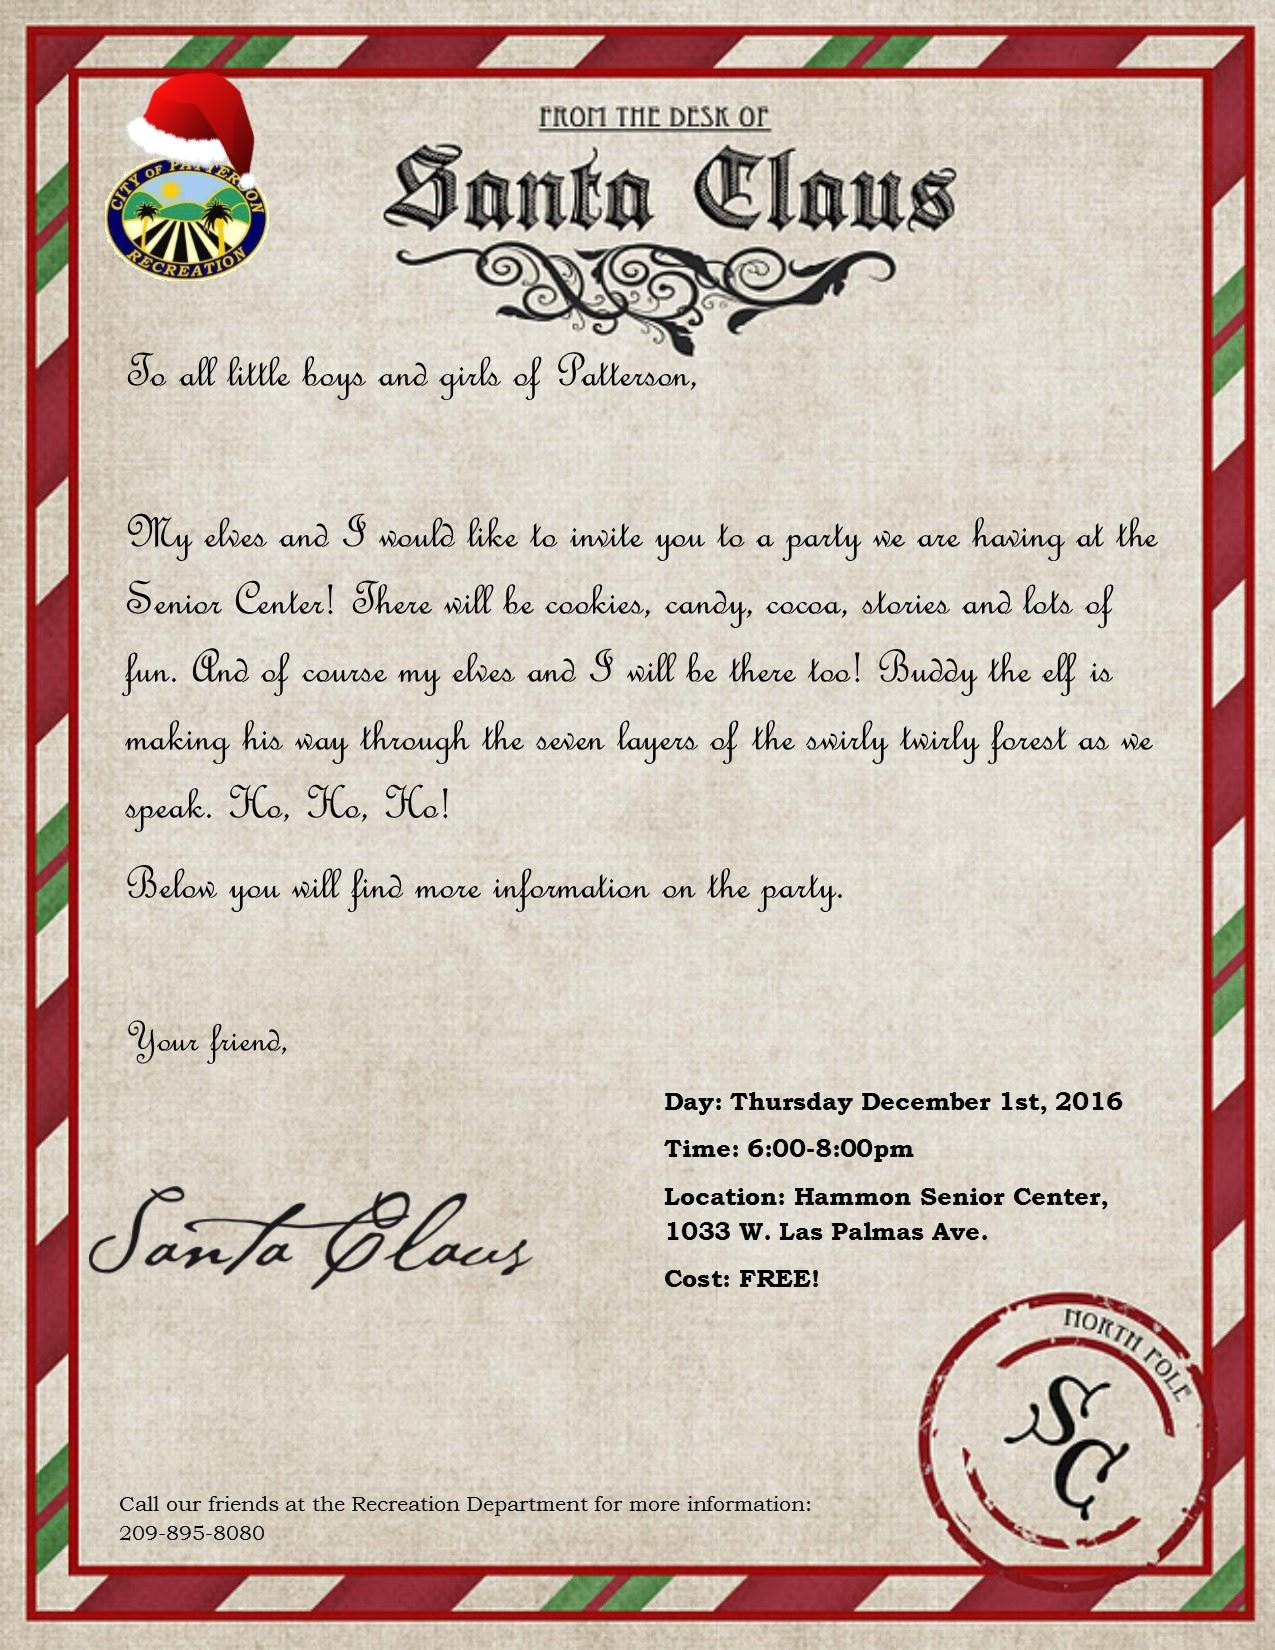 Cookies and Coco with Santa - Letter to Santa